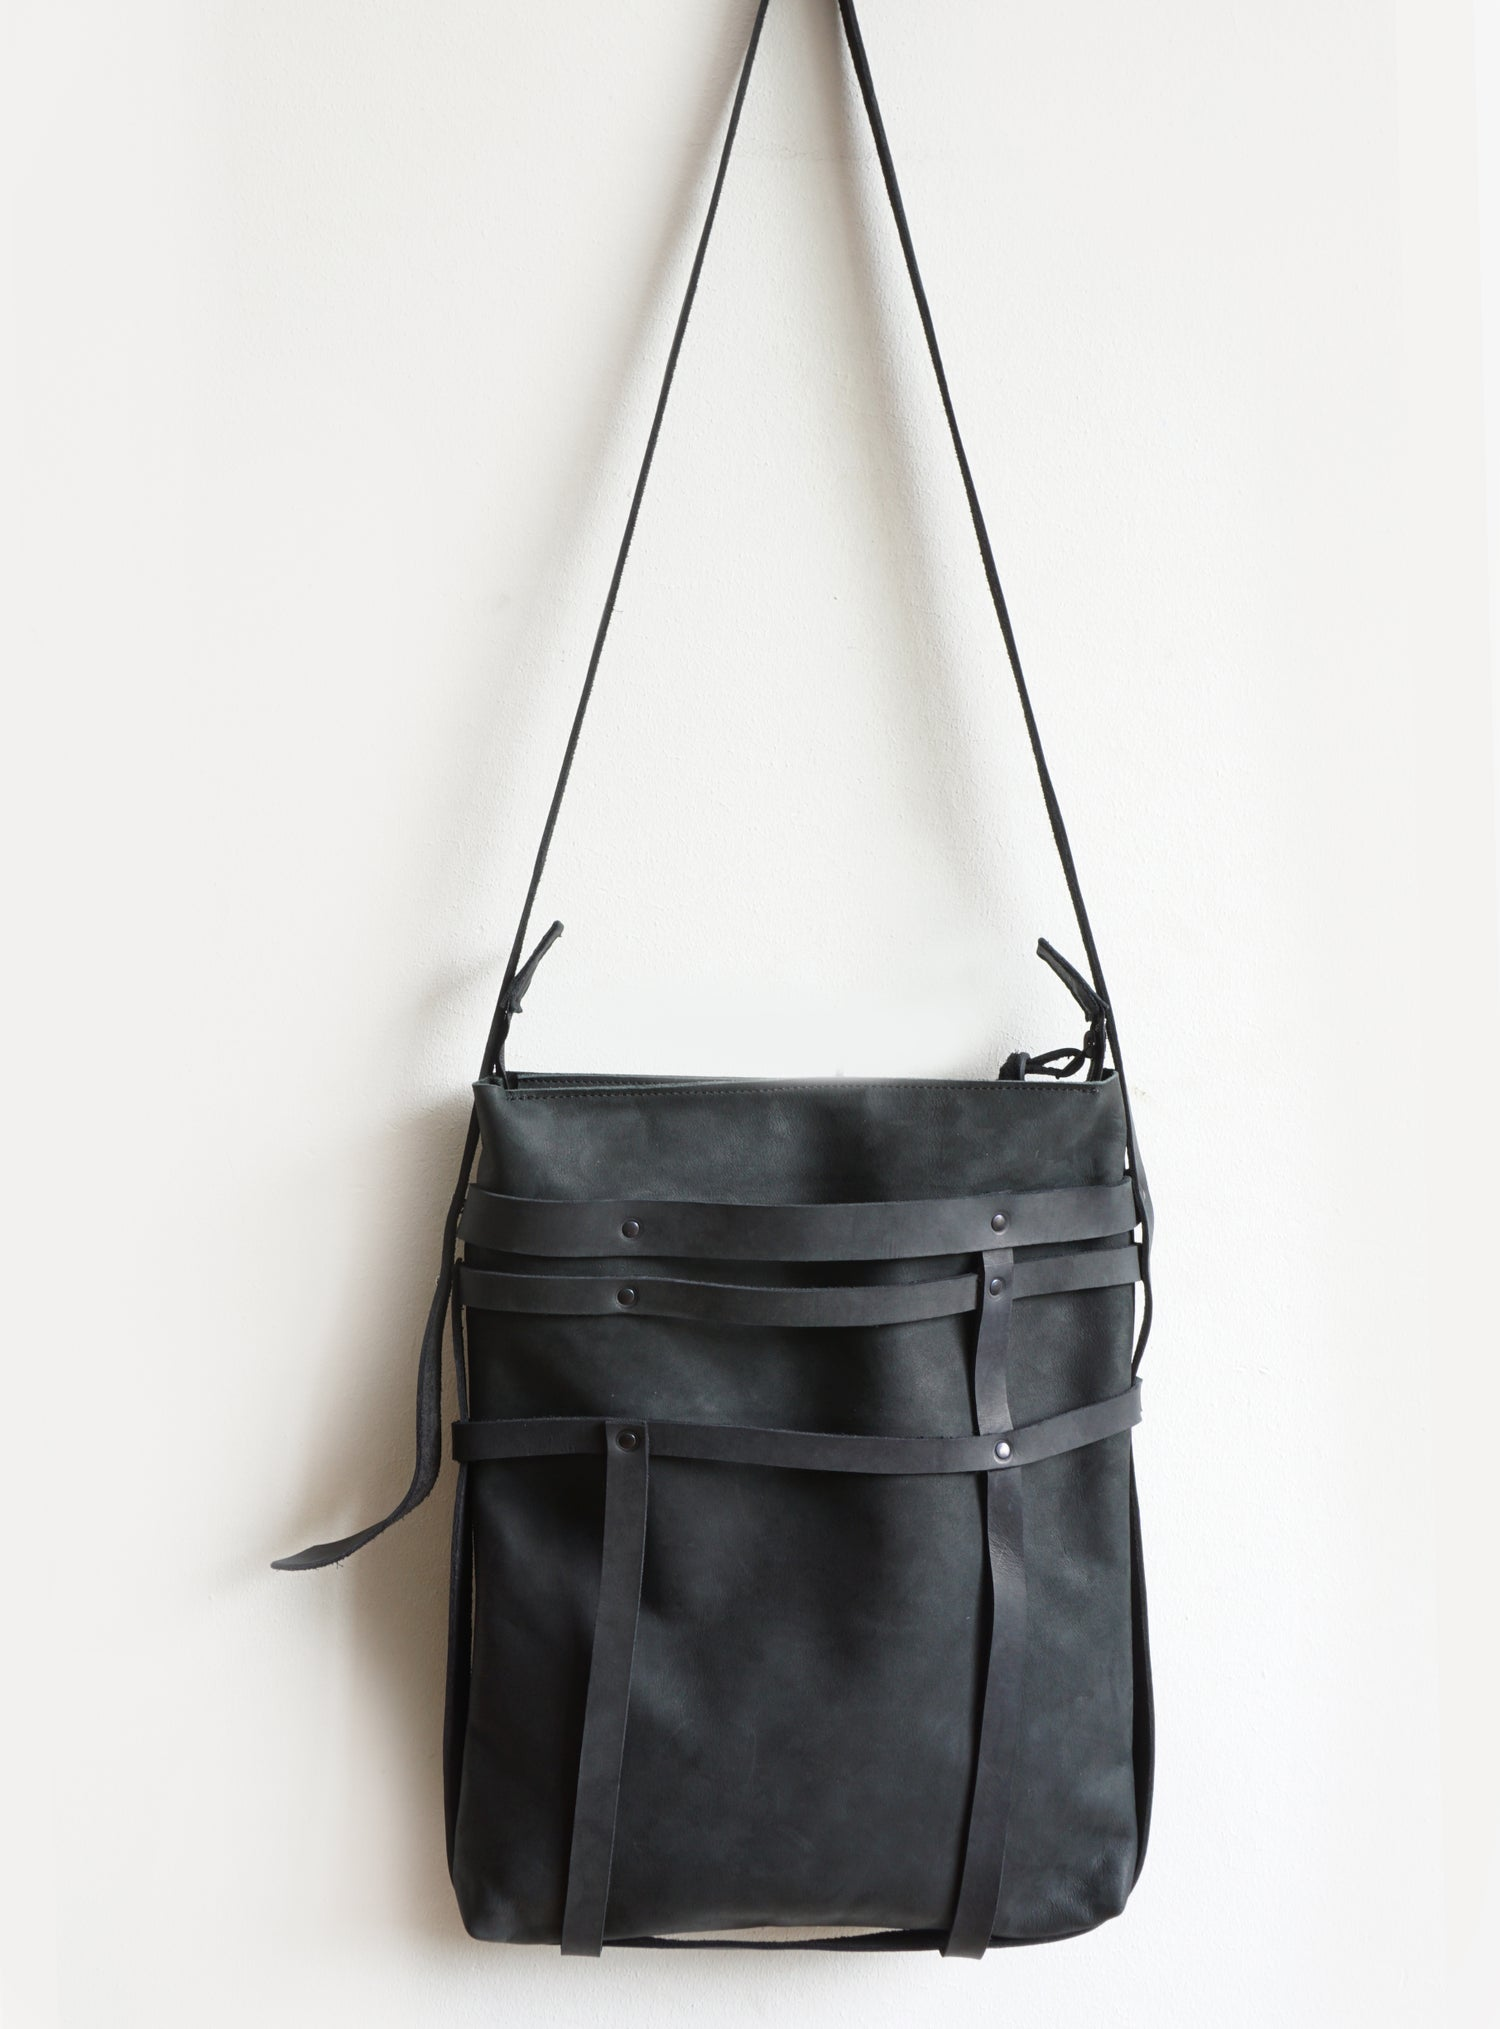 Image of Black Leather Tote Bag Mondriaan, Artisian Leather Cross-Body Bag